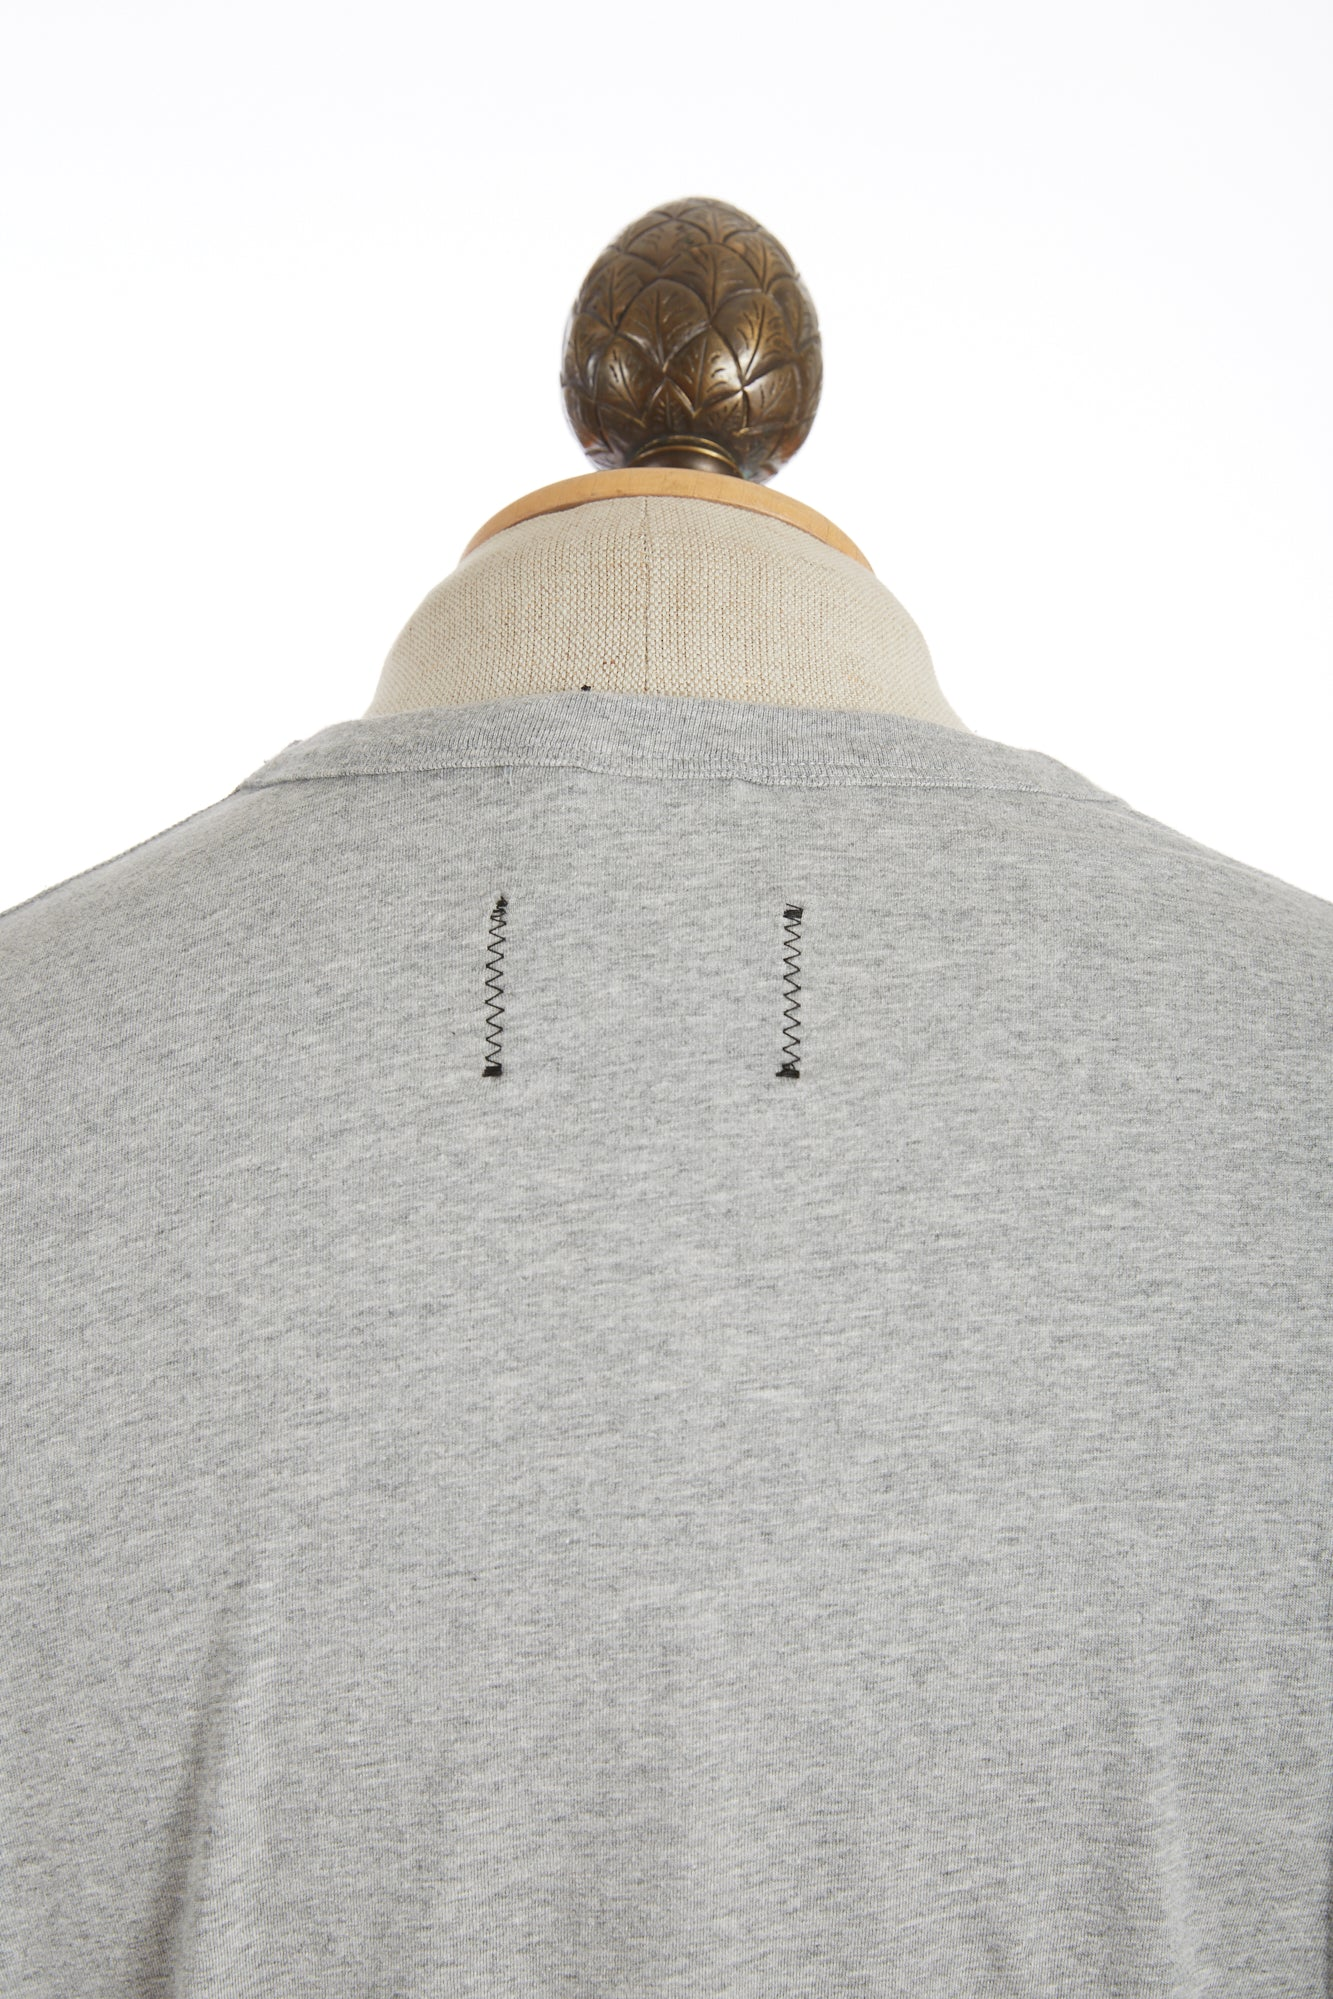 Reigning Champ Grey Cotton Jersey T-Shirt